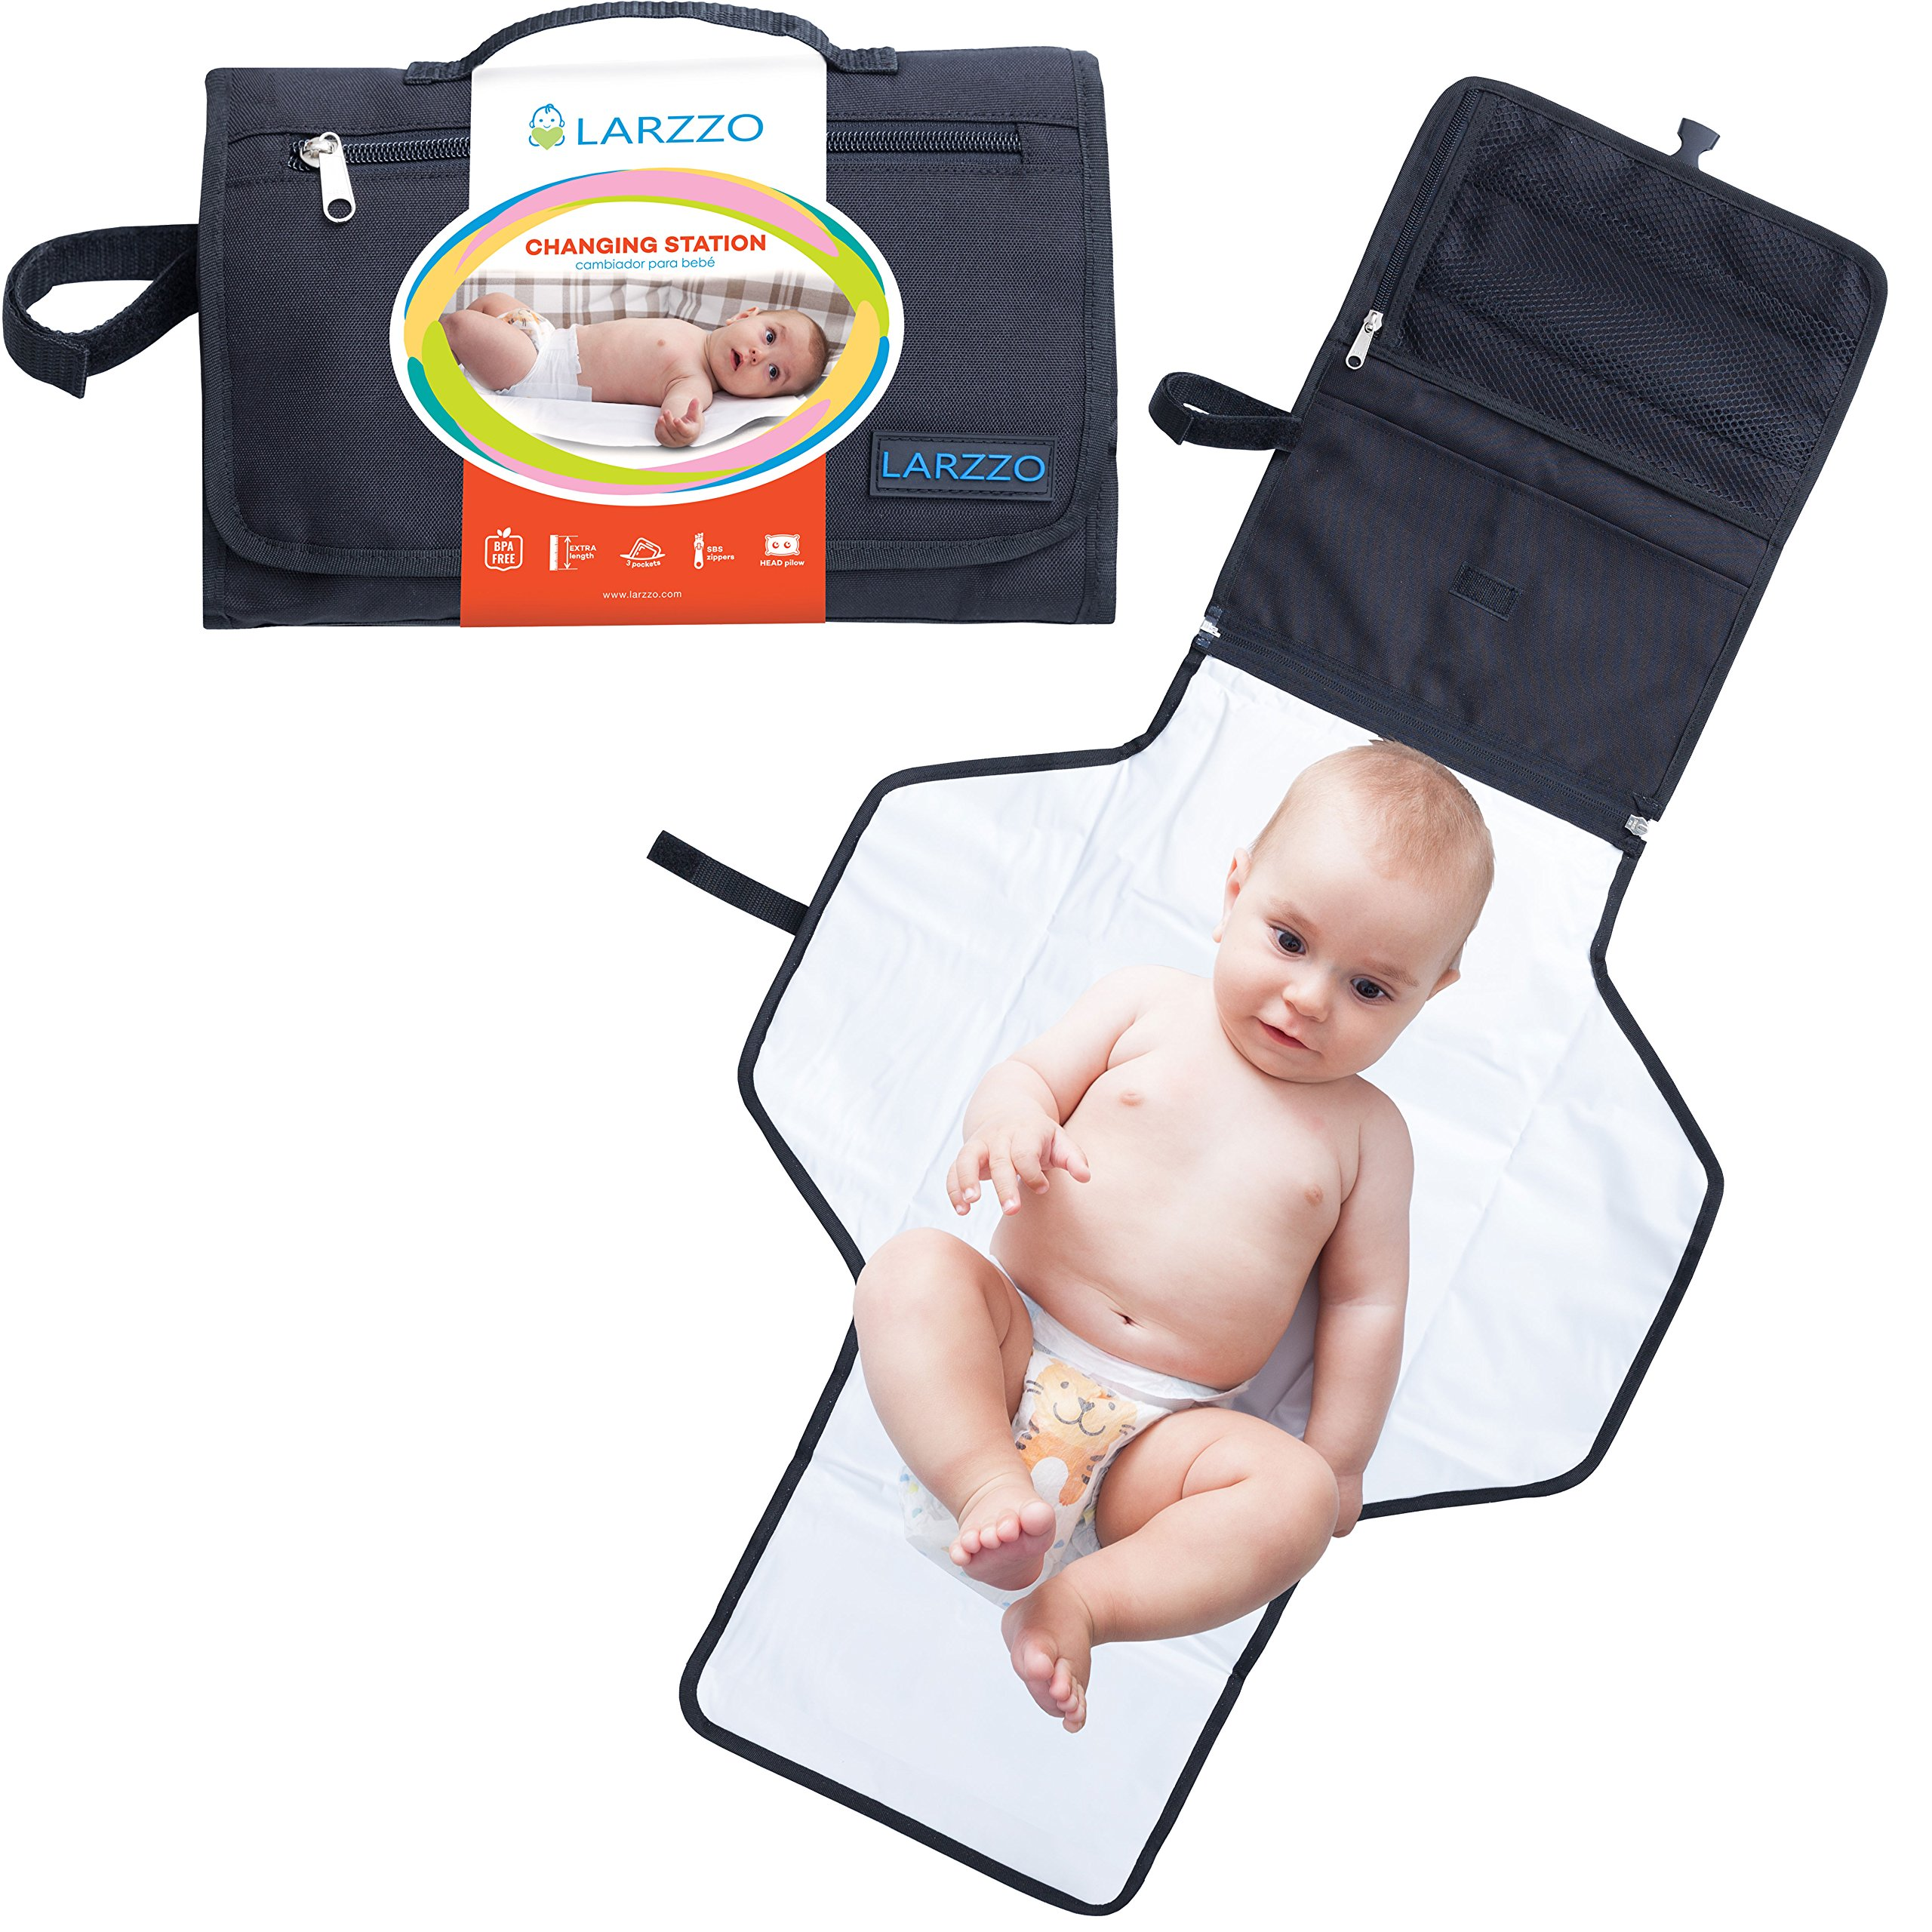 Diaper Changing Pad for Infants Baby Portable Diaper Changing Kit for Dads Moms-Changing Station Organizer Outdoor/&Travel Diaper Bag Foldable Waterproof Cushioned Diaper Changing Mat Yellow or Blue